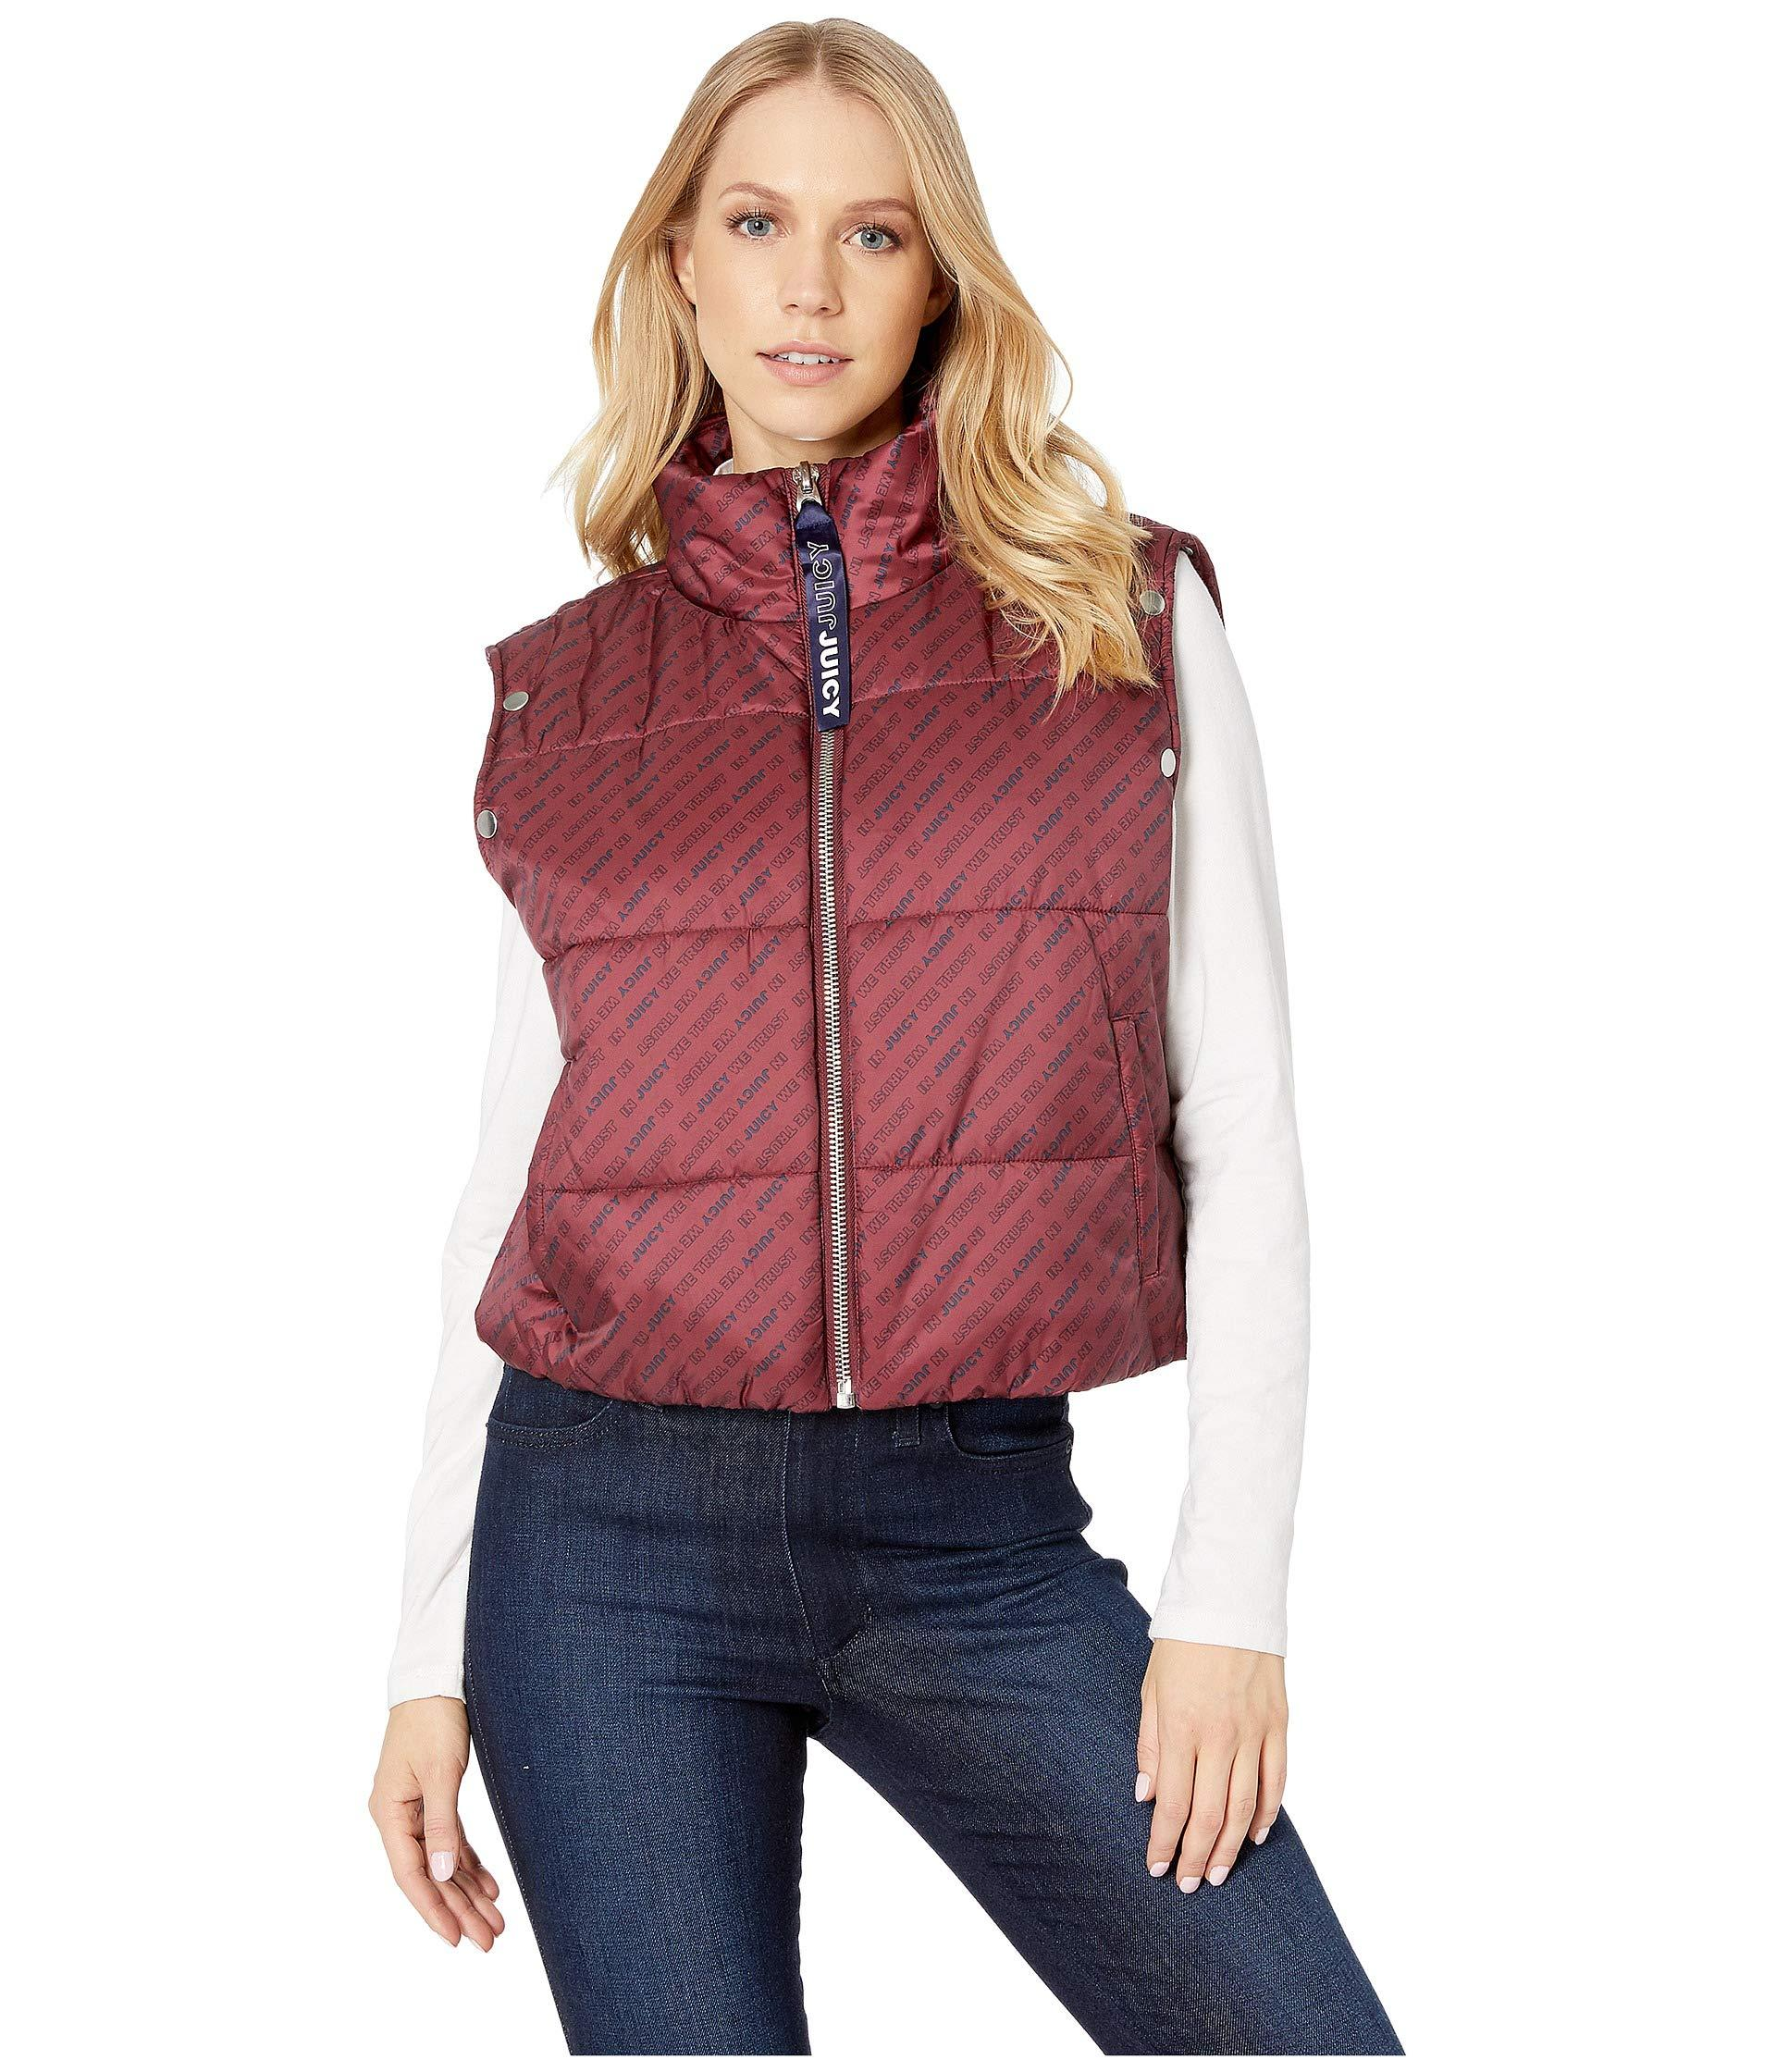 28919d78f2 Juicy Couture - Red Jxjc Repeat Snap Off Sleeve Puffer Jacket - Lyst. View  fullscreen